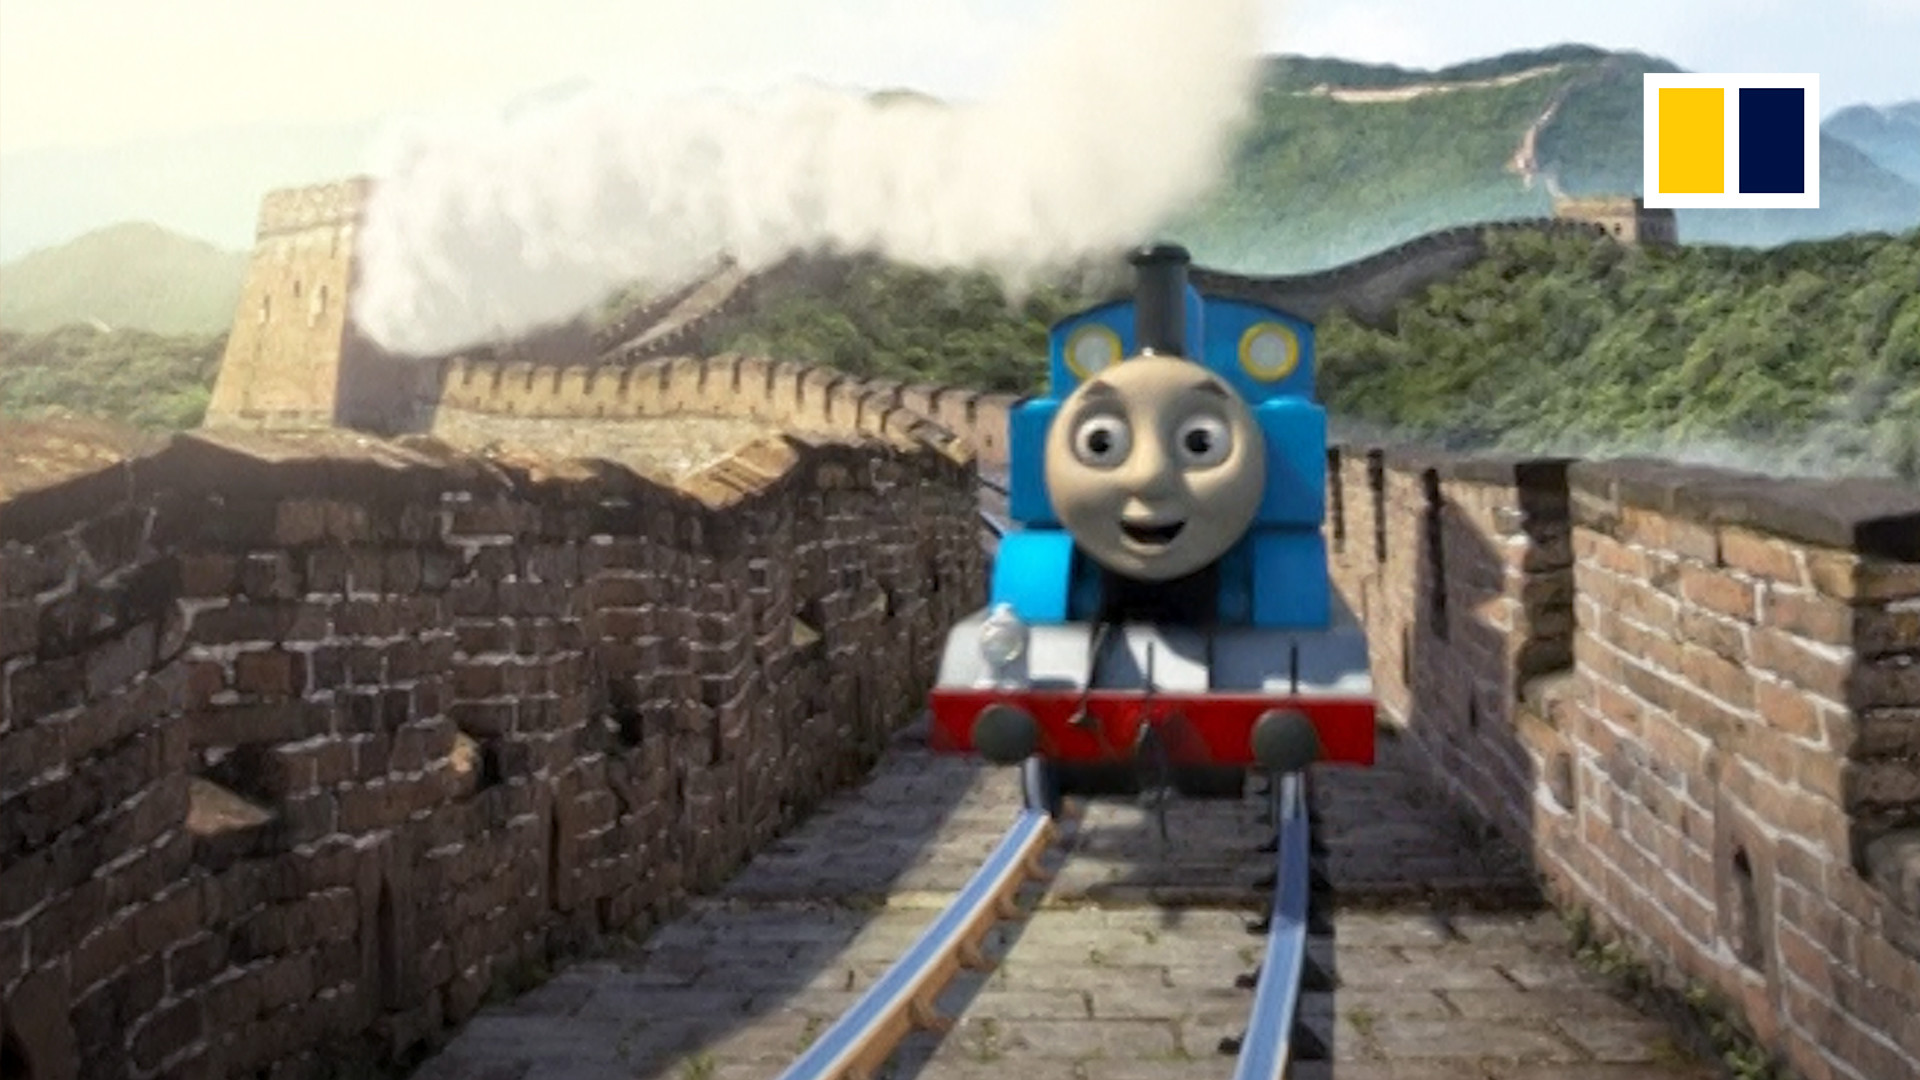 1920x1080 Thomas the Tank Engine travels the world and makes some diverse new friends  | South China Morning Post